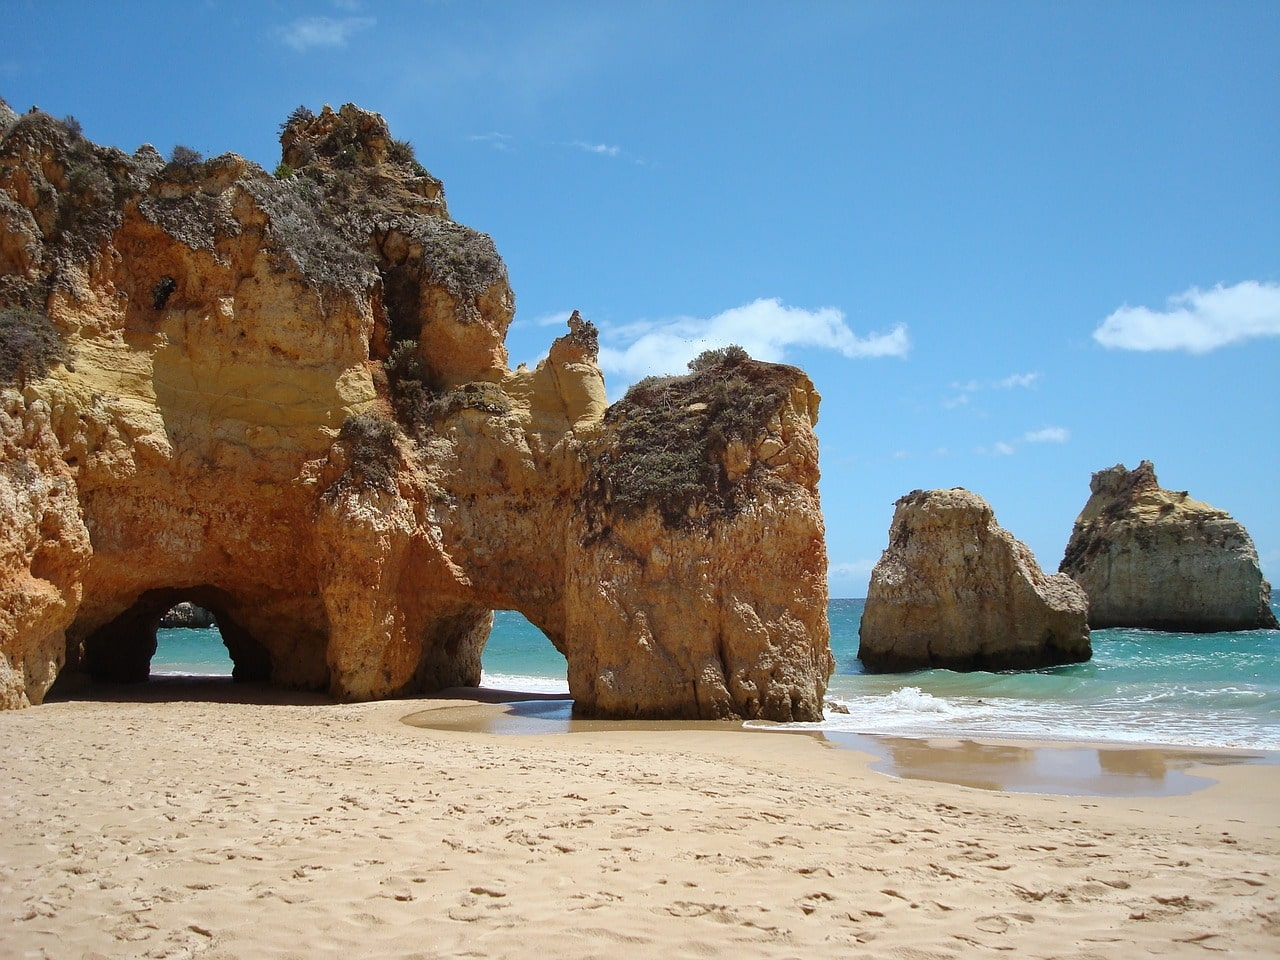 algarve-beach-portugal-orchards-near-me-experience